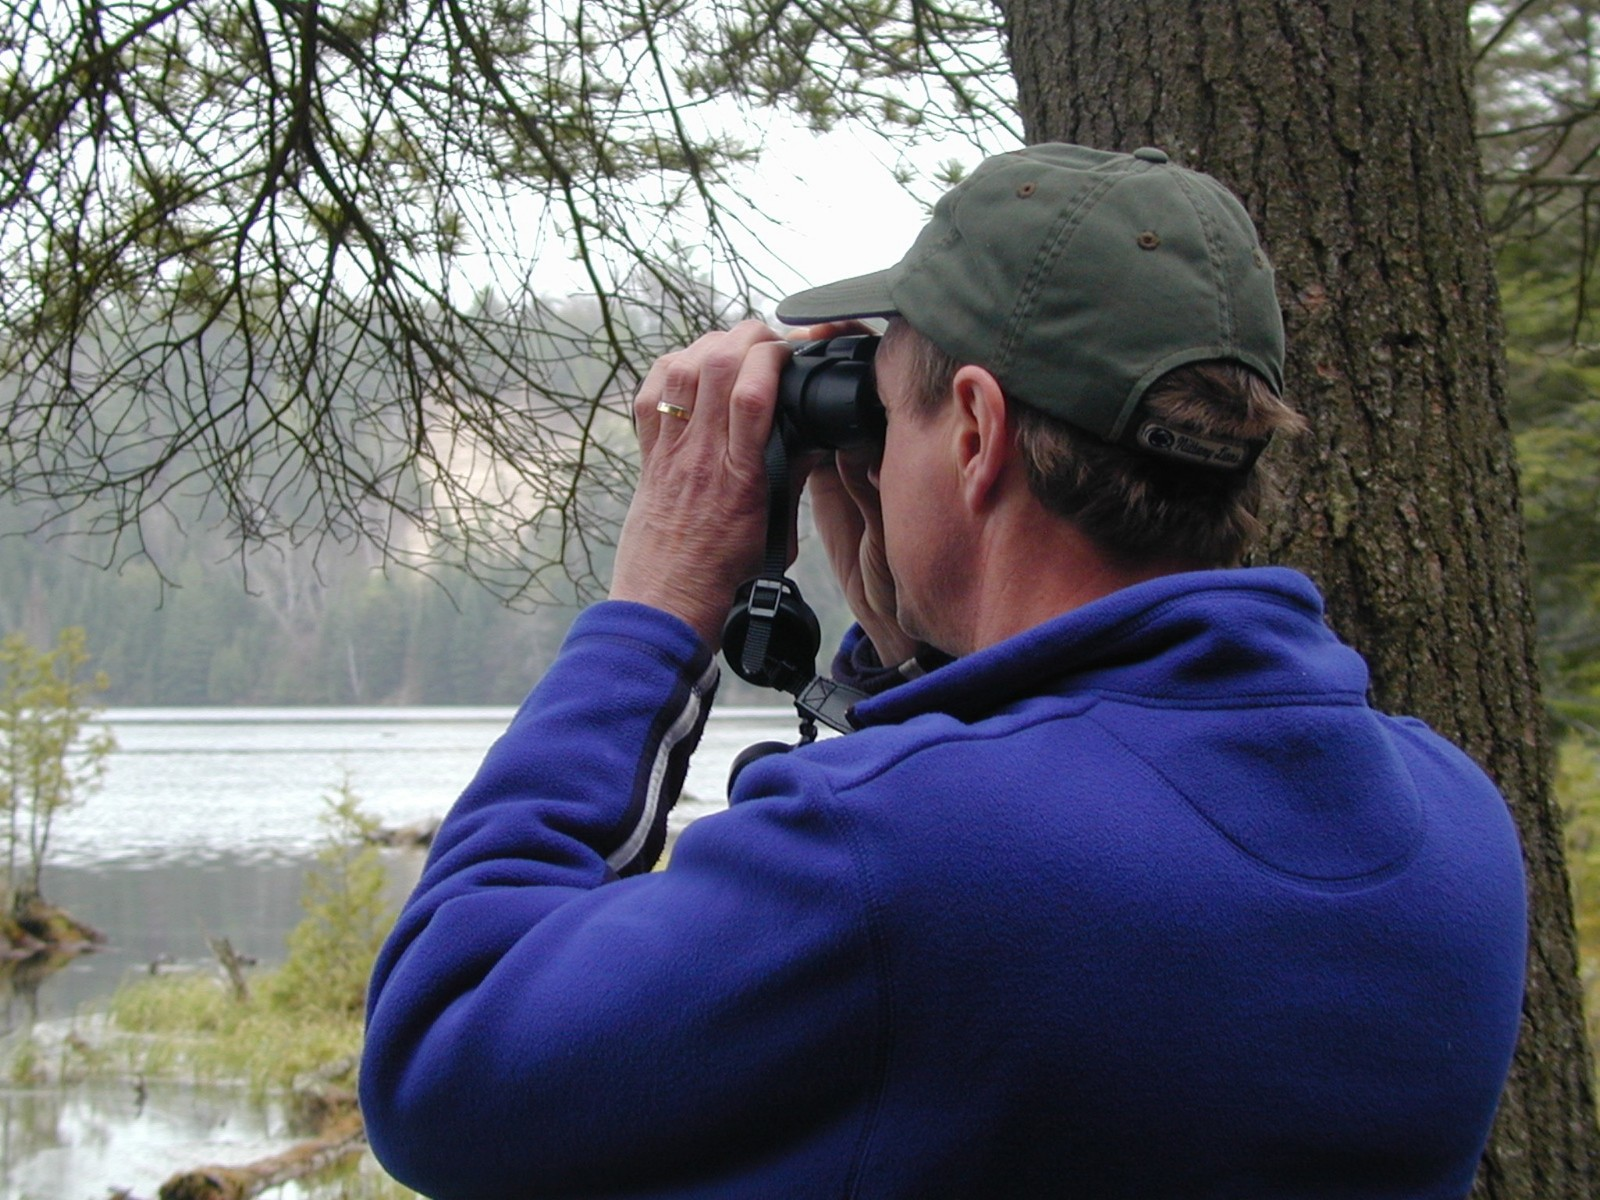 River Road Scenic Byway - Spring Birding at Iargo Springs